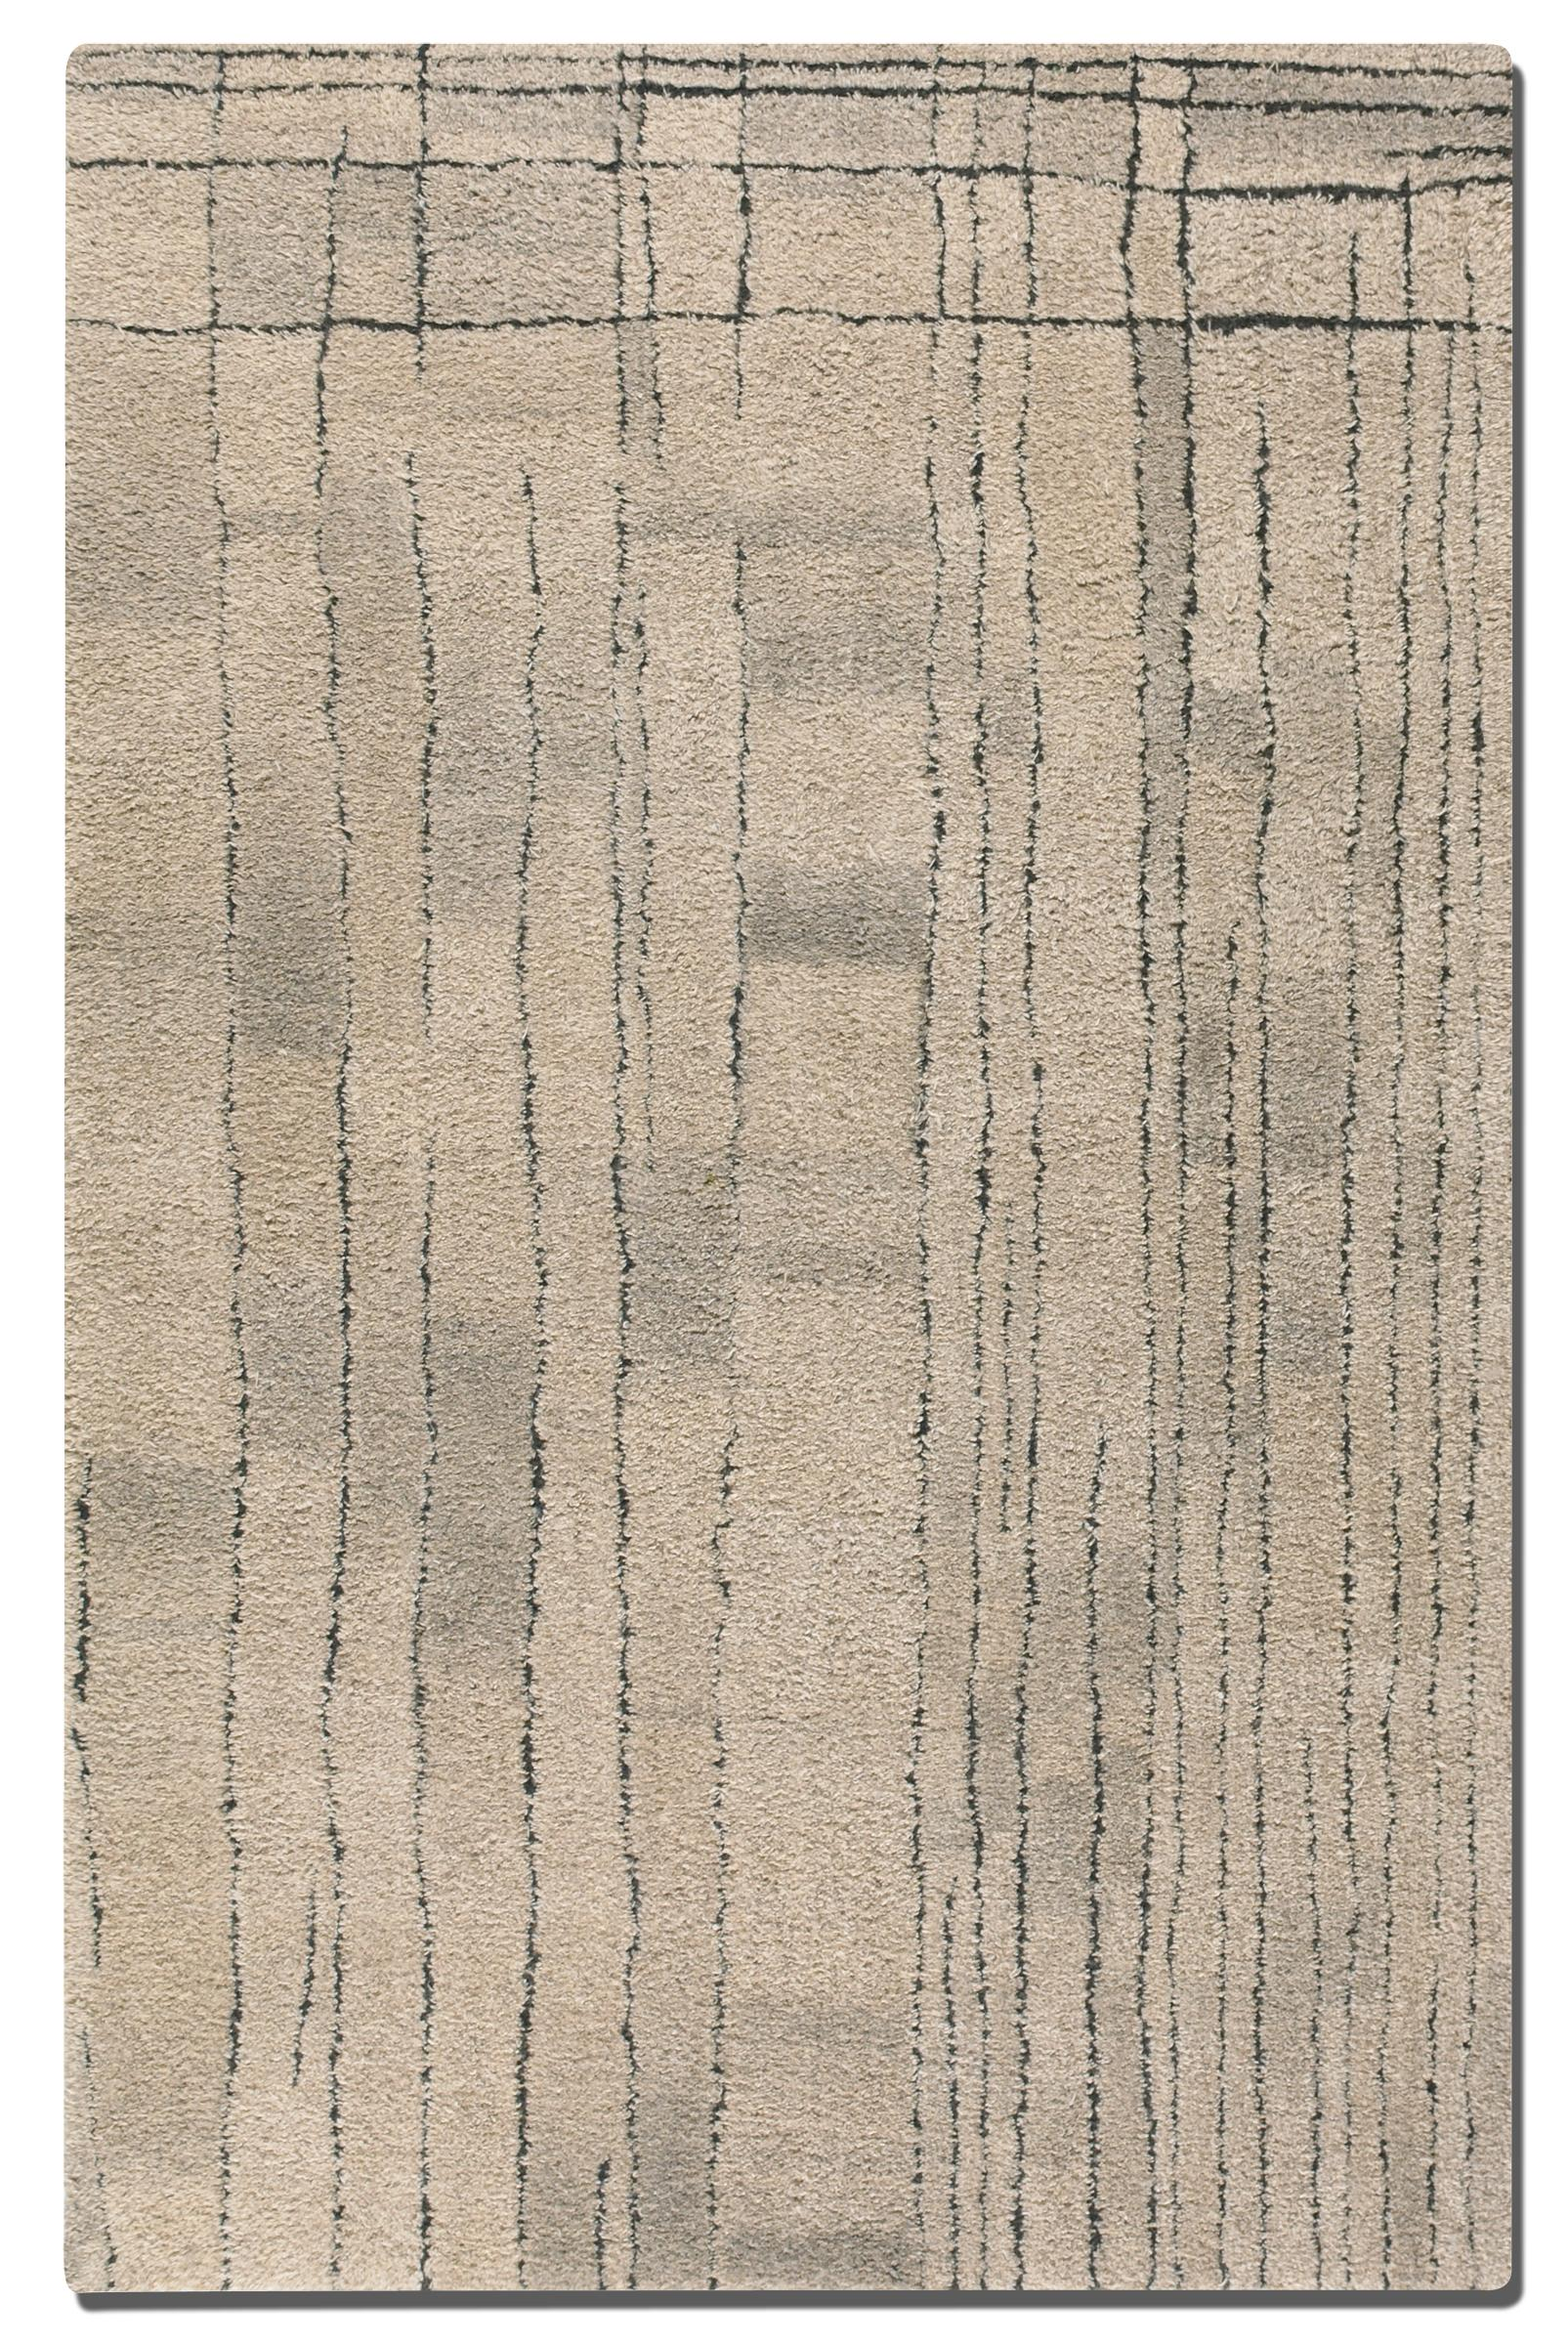 Uttermost Rugs Tangier 8 X 10 - Item Number: 73002-8